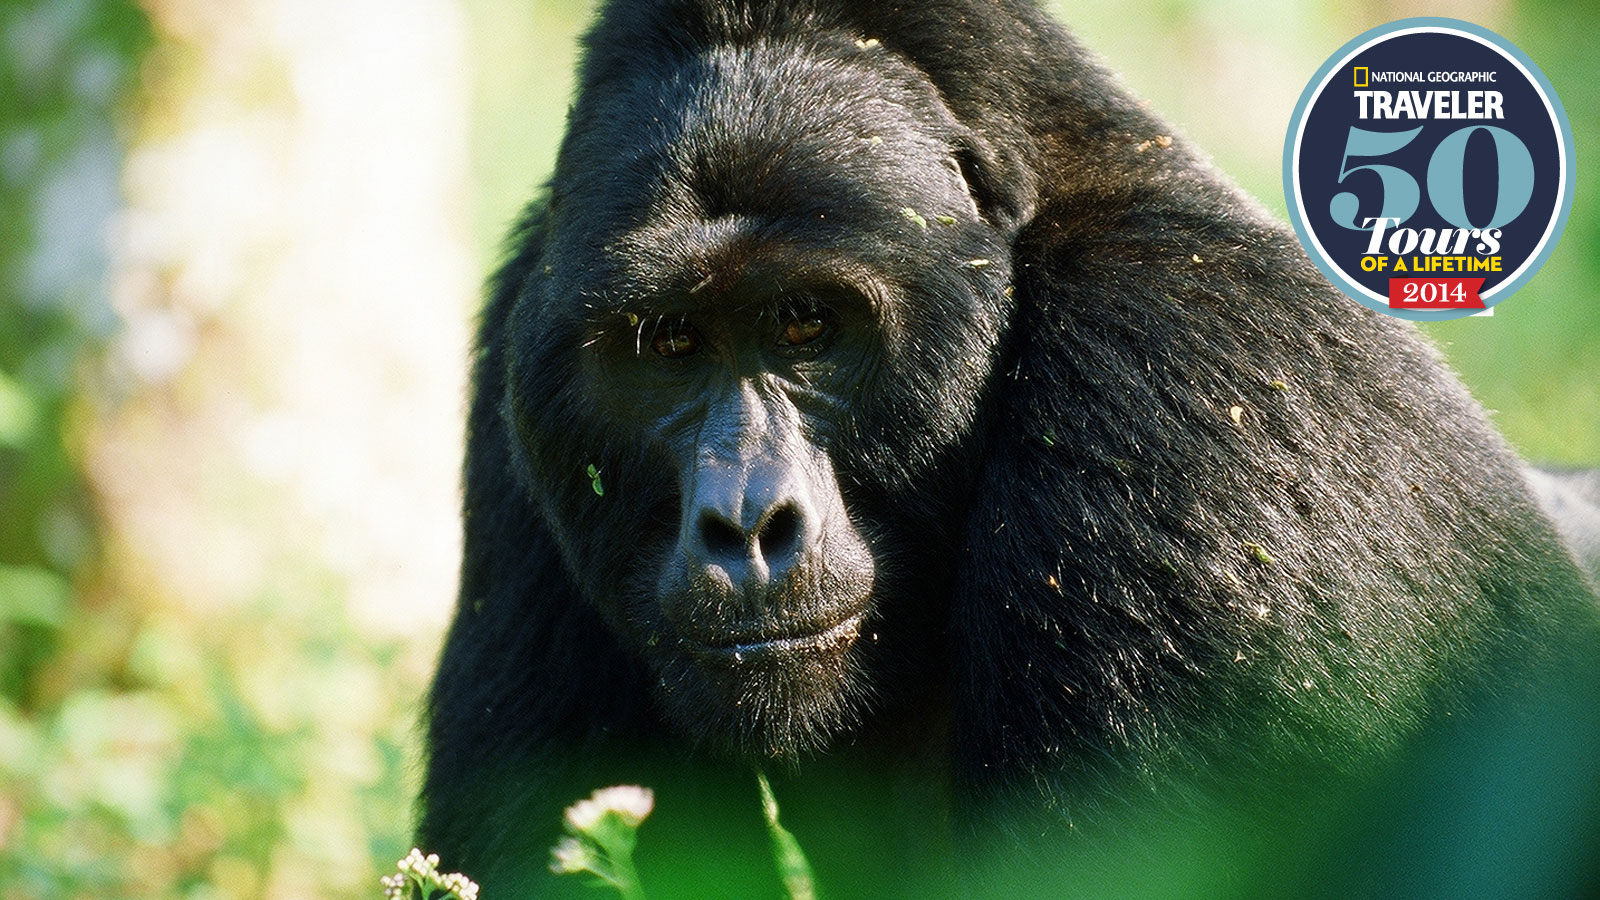 gorilla-large-national-geographic.jpeg